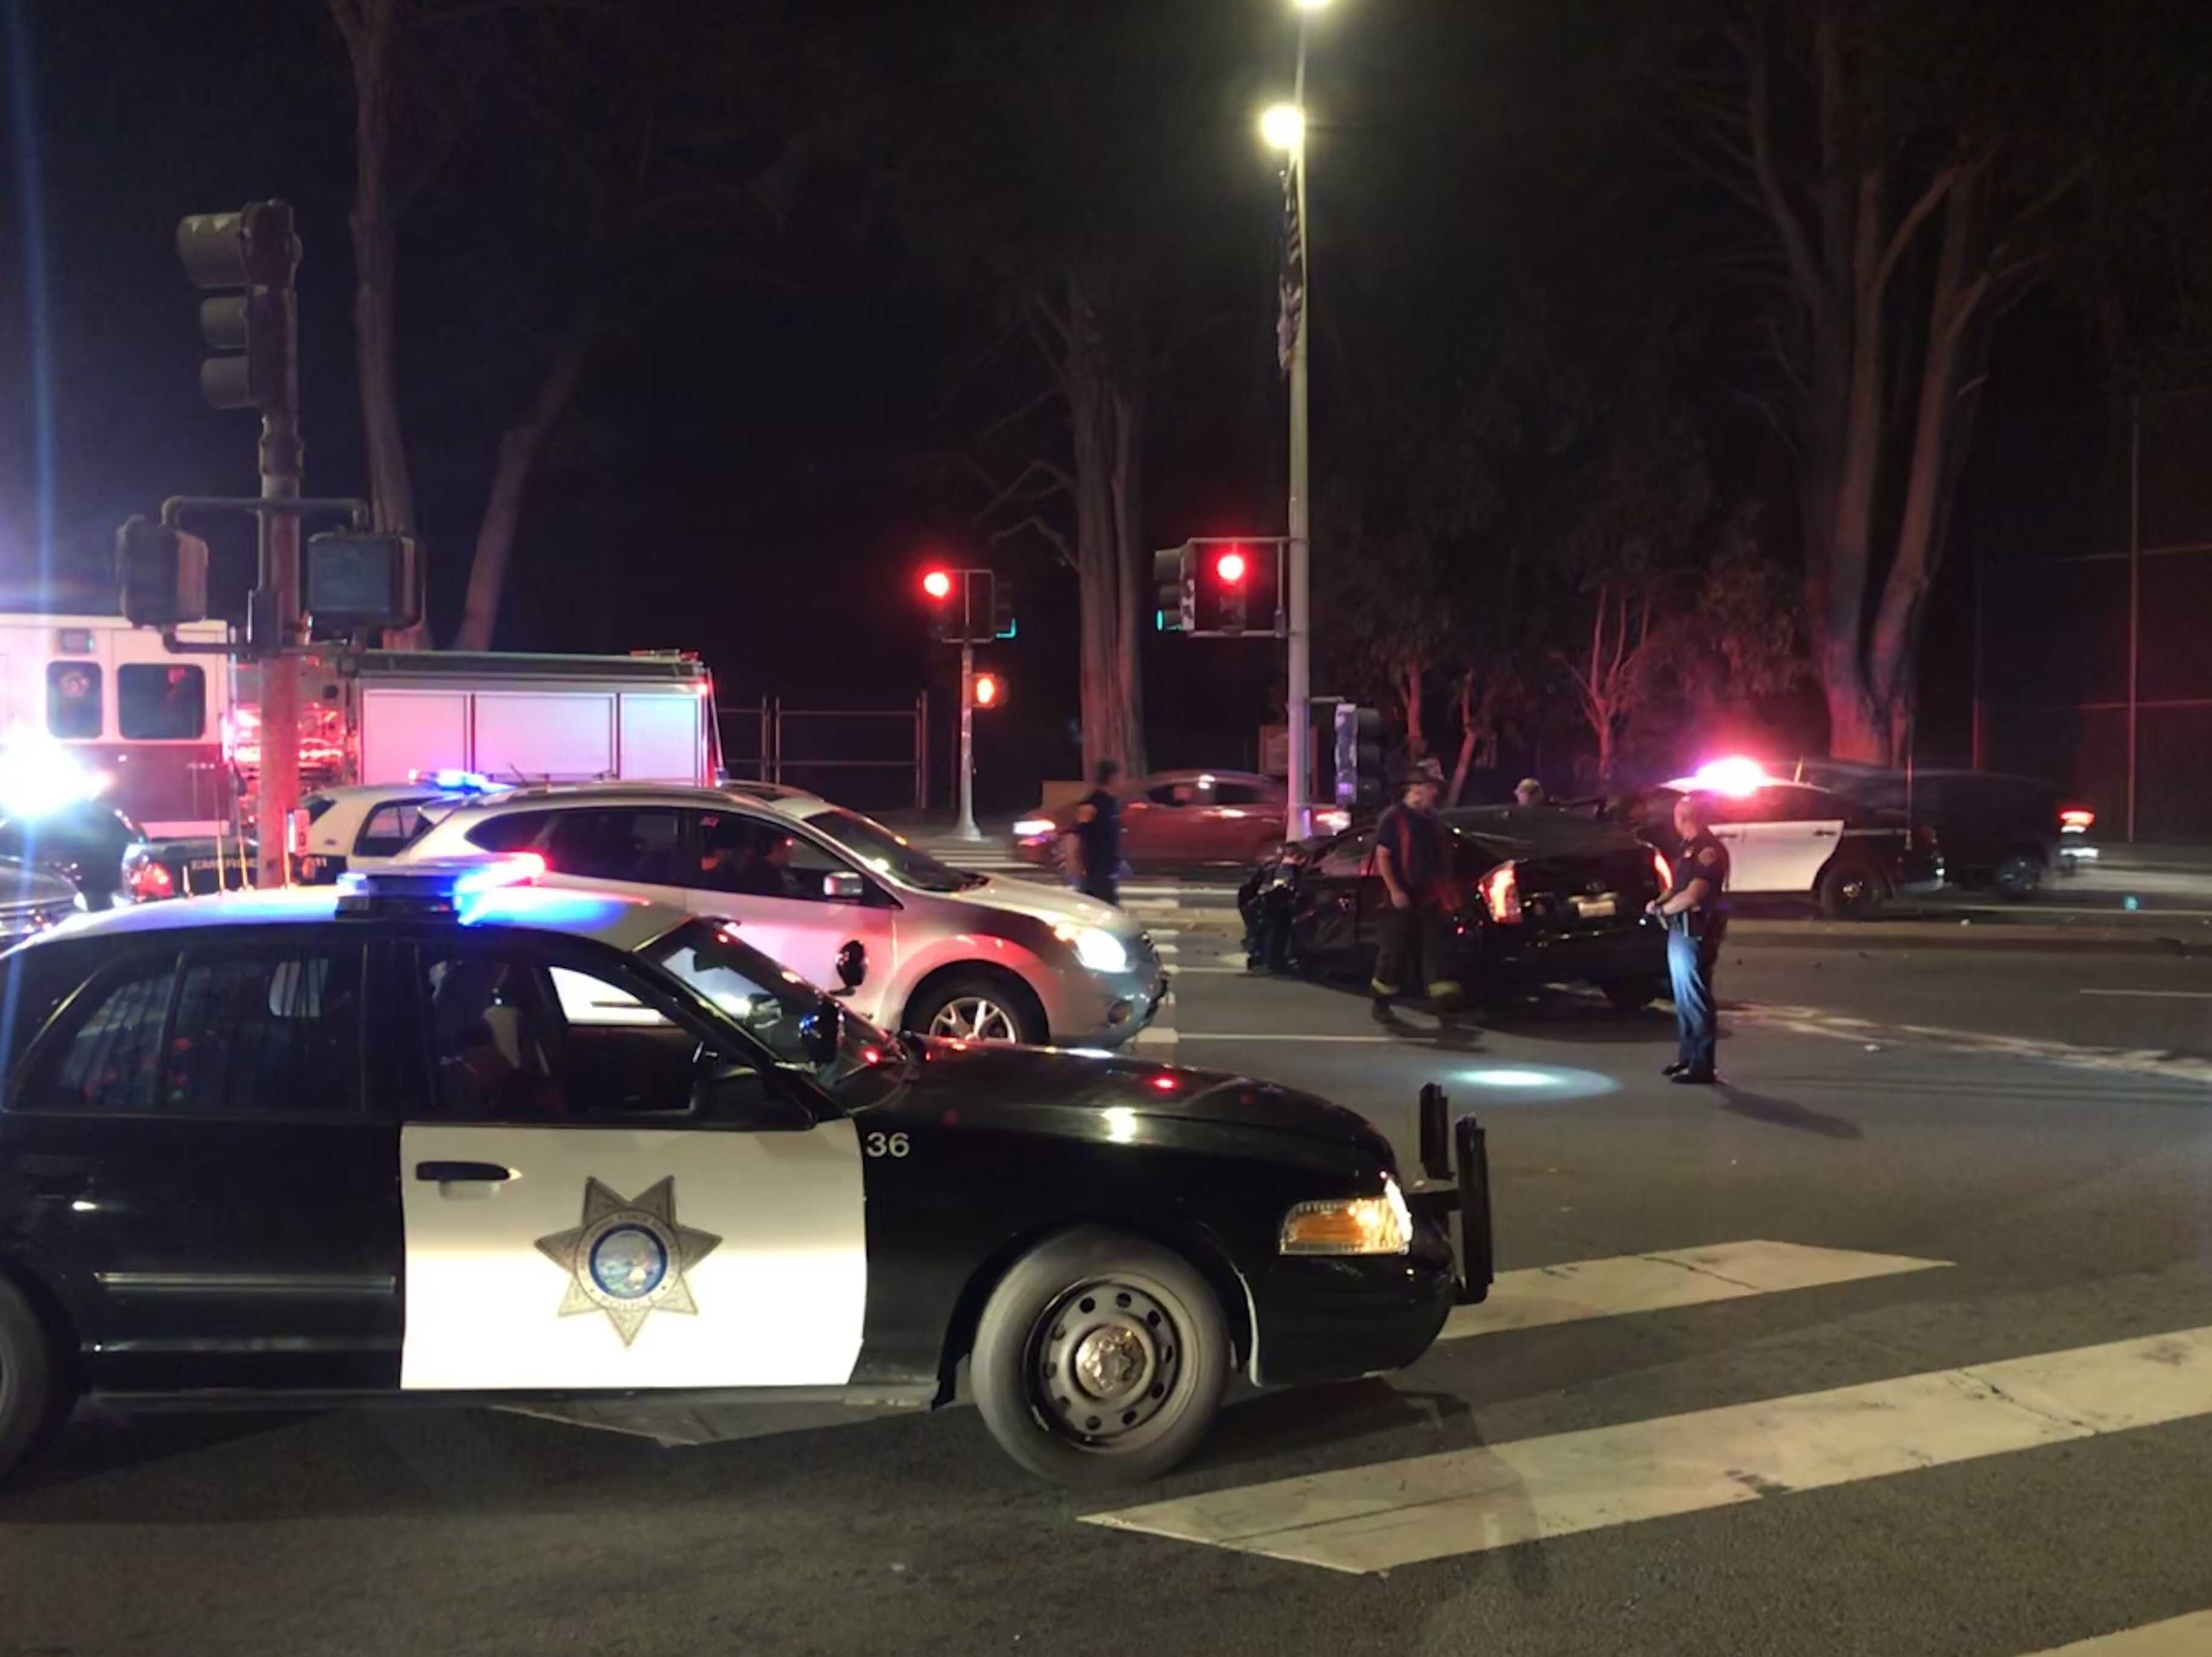 Officers respond to a car accident on Lake Merced Blvd.